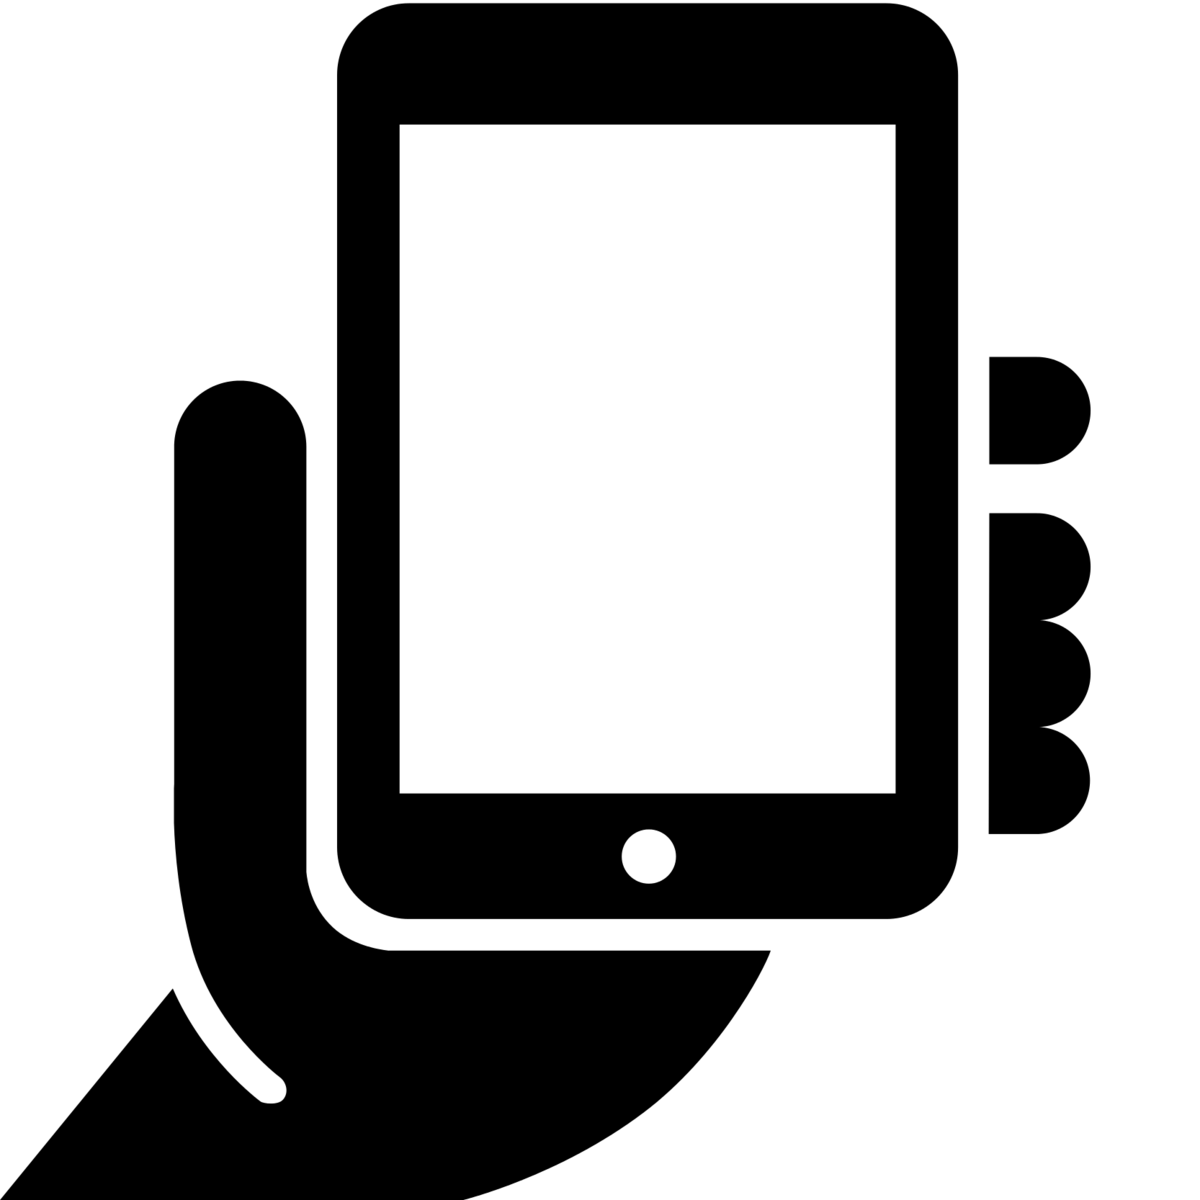 Cell Phone Icon Png (+).